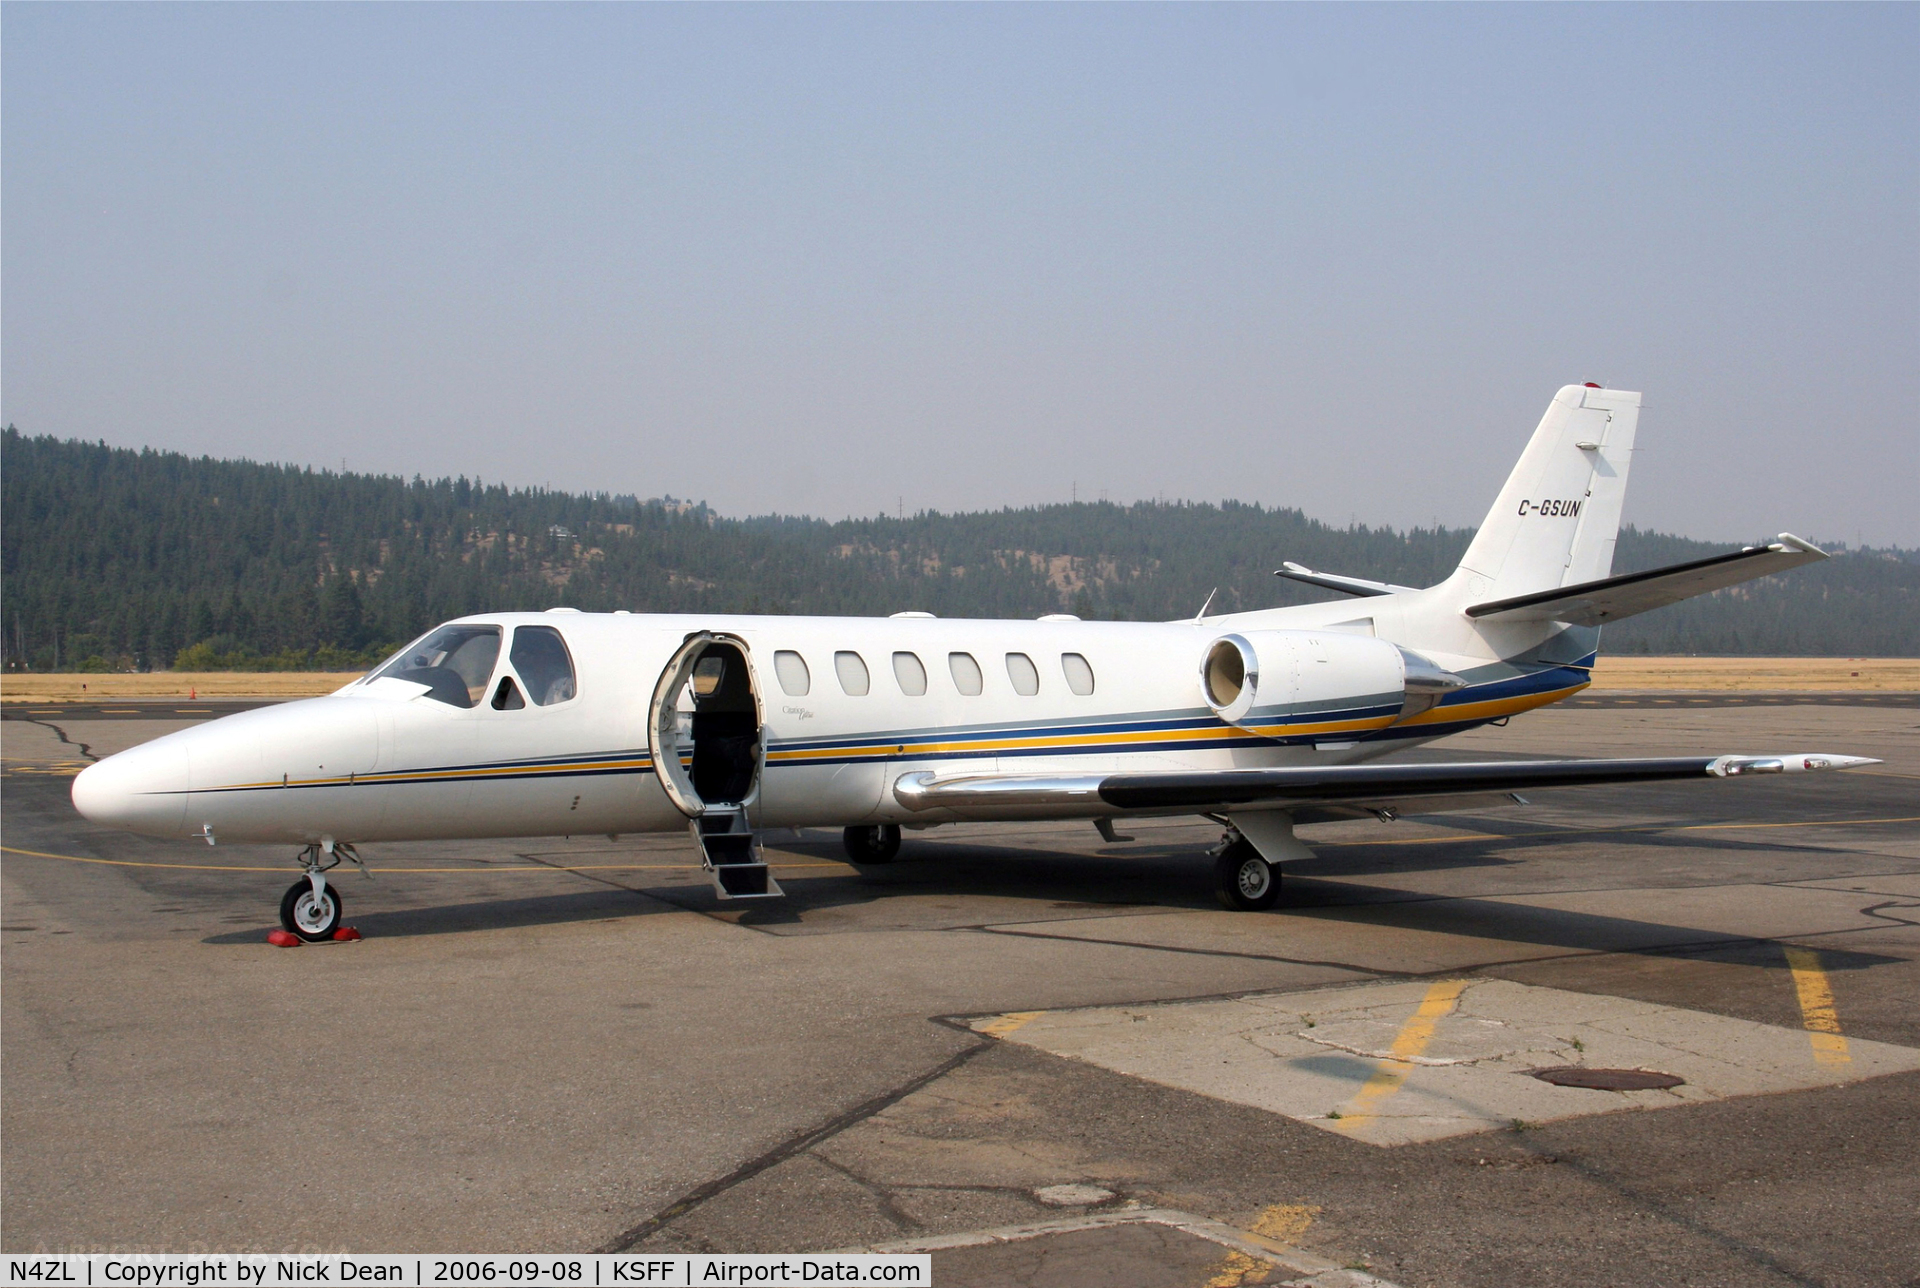 N4ZL, 1997 Cessna 560 Citation Ultra C/N 560-0448, KSFF (Seen here as C-GSUN this airframe is currently registered N4ZL as posted)